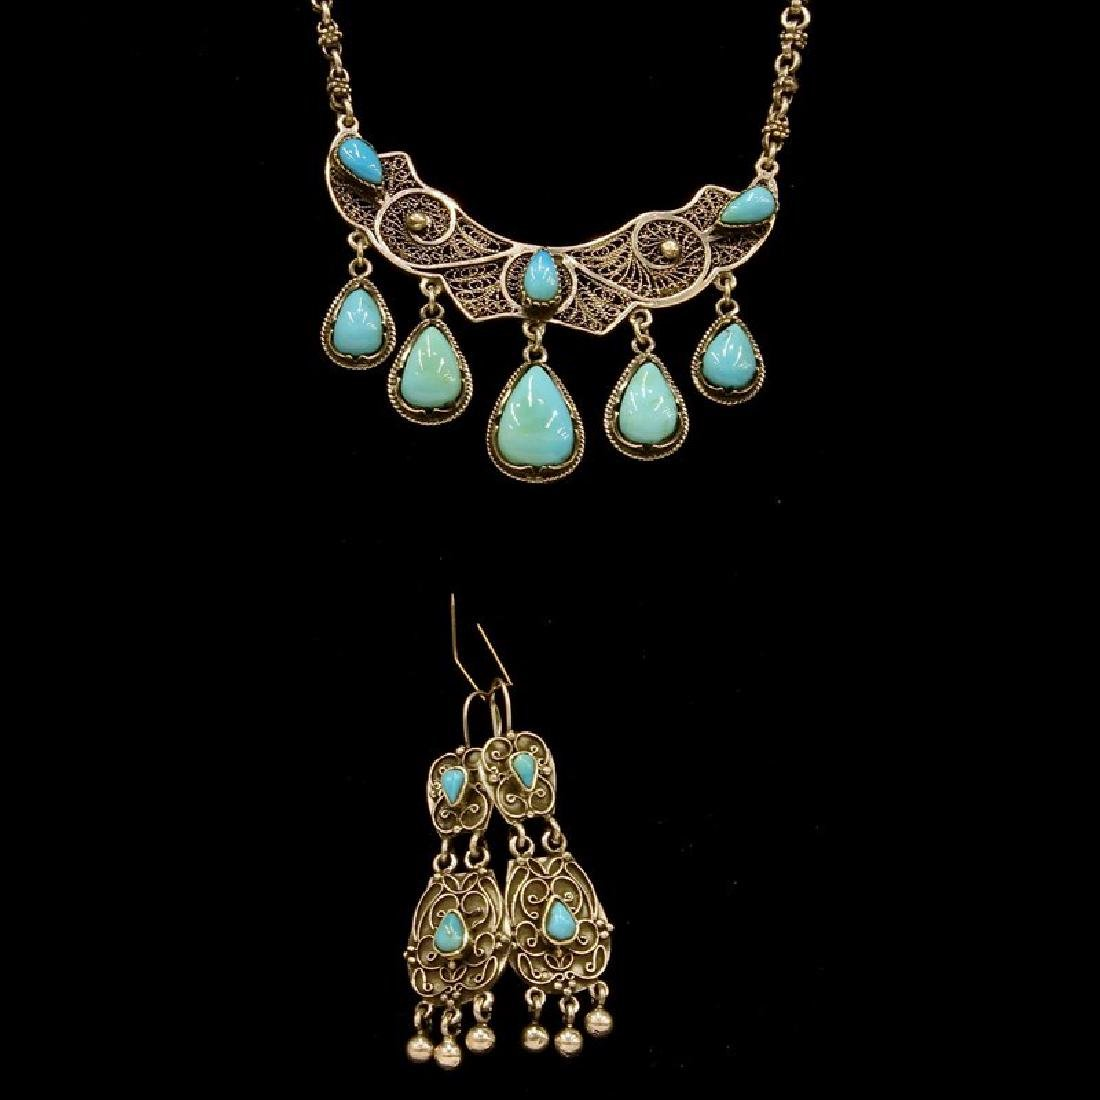 Sleeping Beauty Turquoise Necklace And Earring